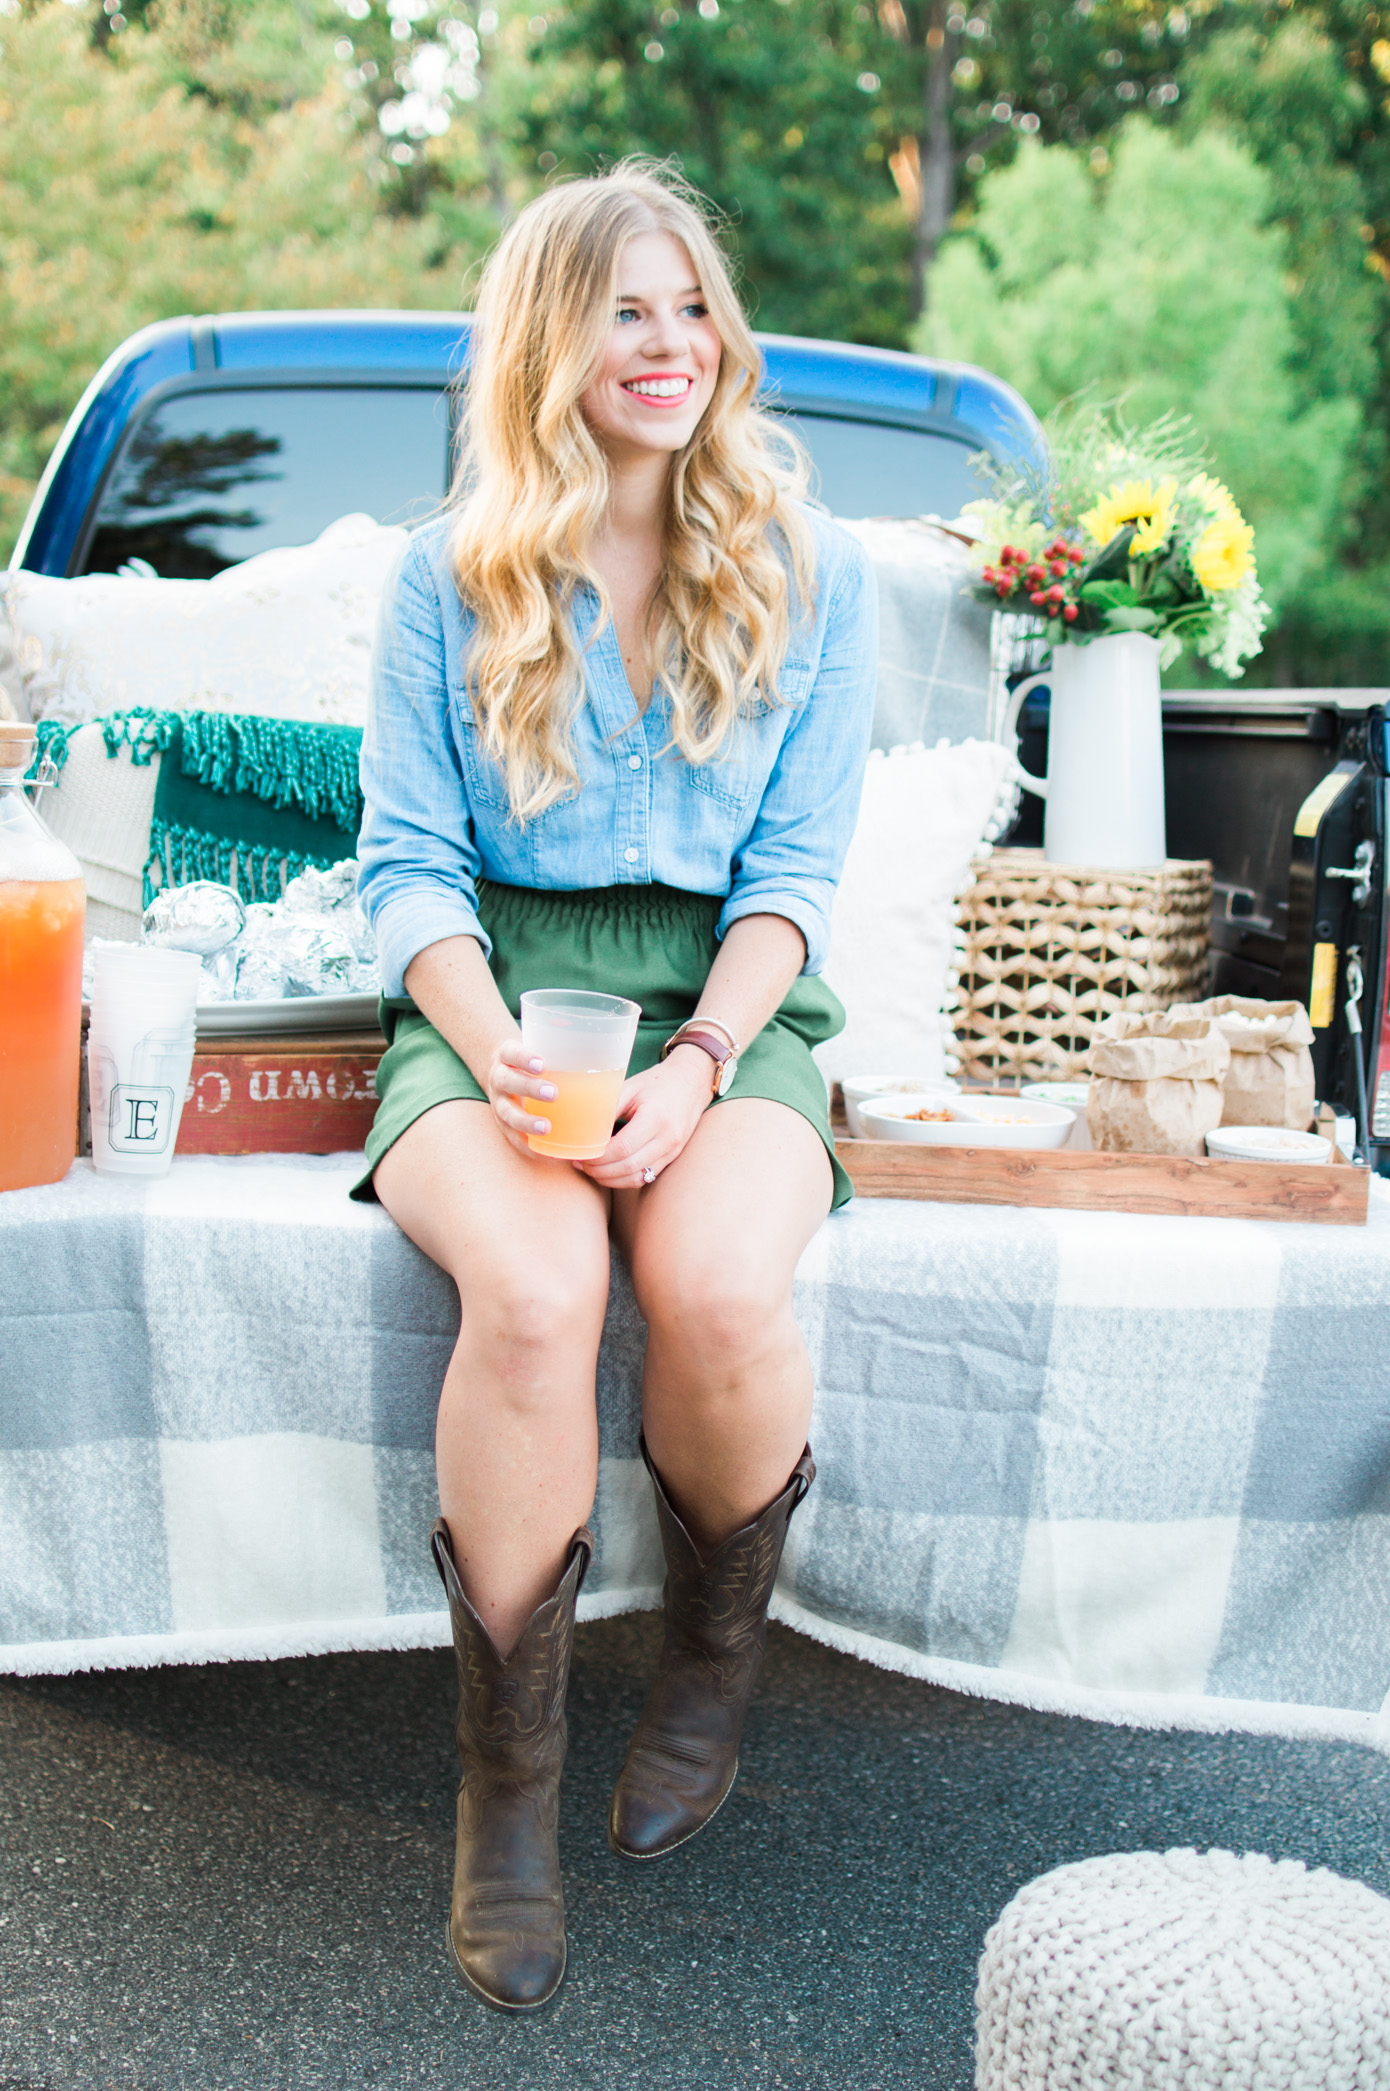 How to Throw a Tailgate Party | Cozy Chic Tailgate | Louella Reese Life & Style Blog